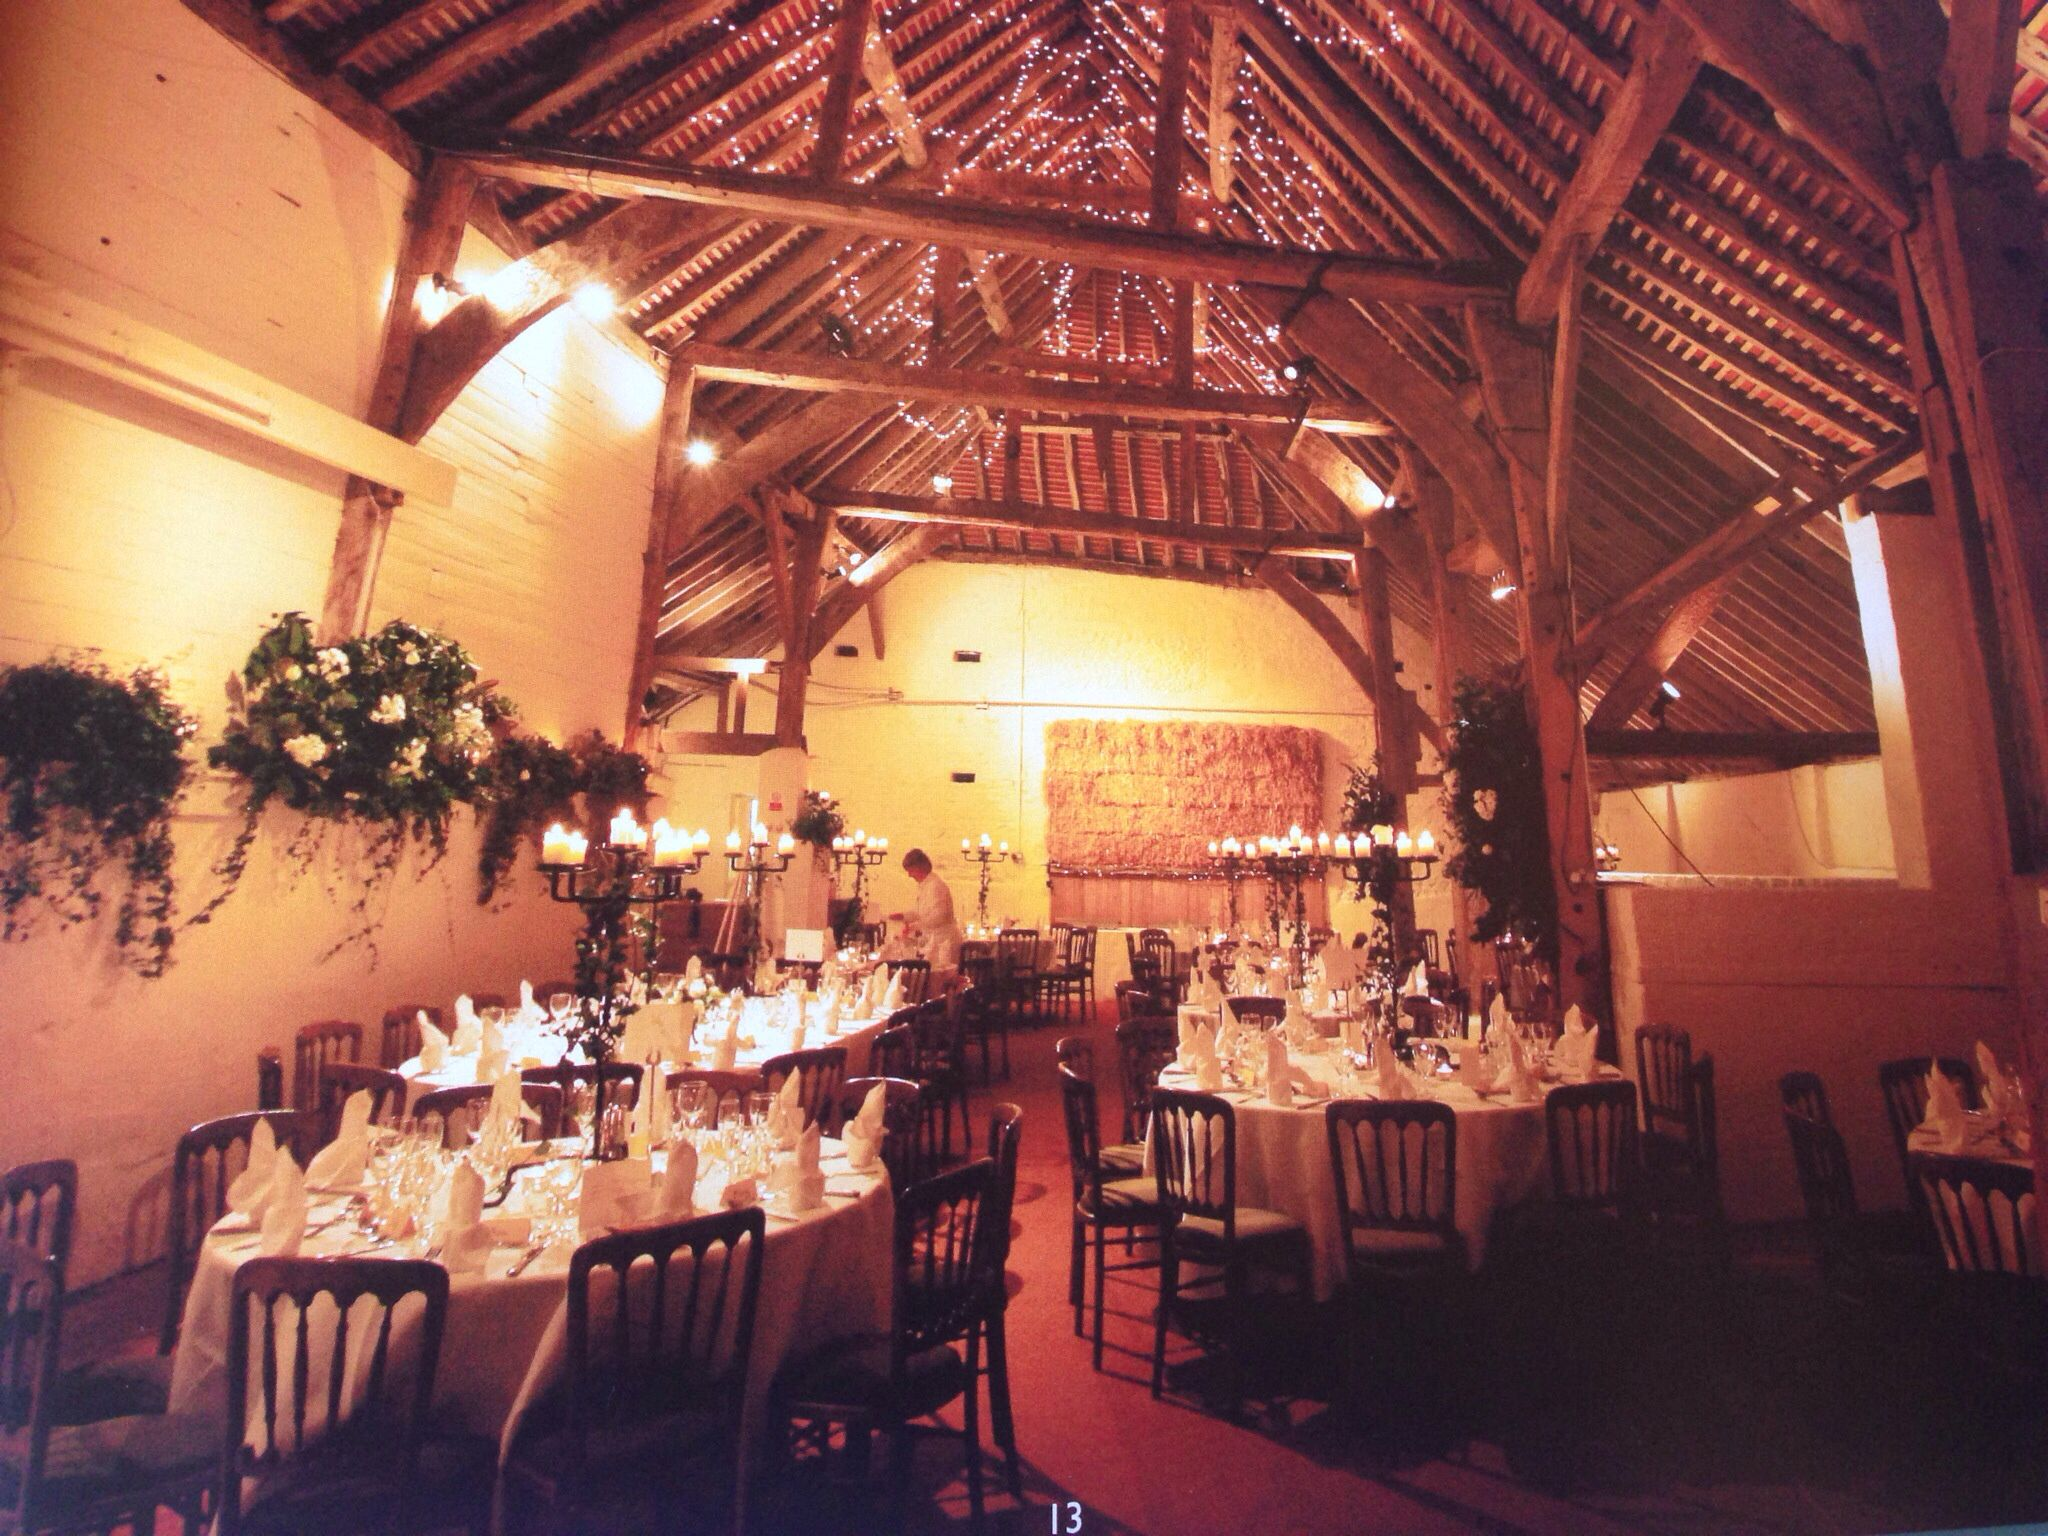 The STUNNING Pangdean barn in East Sussex